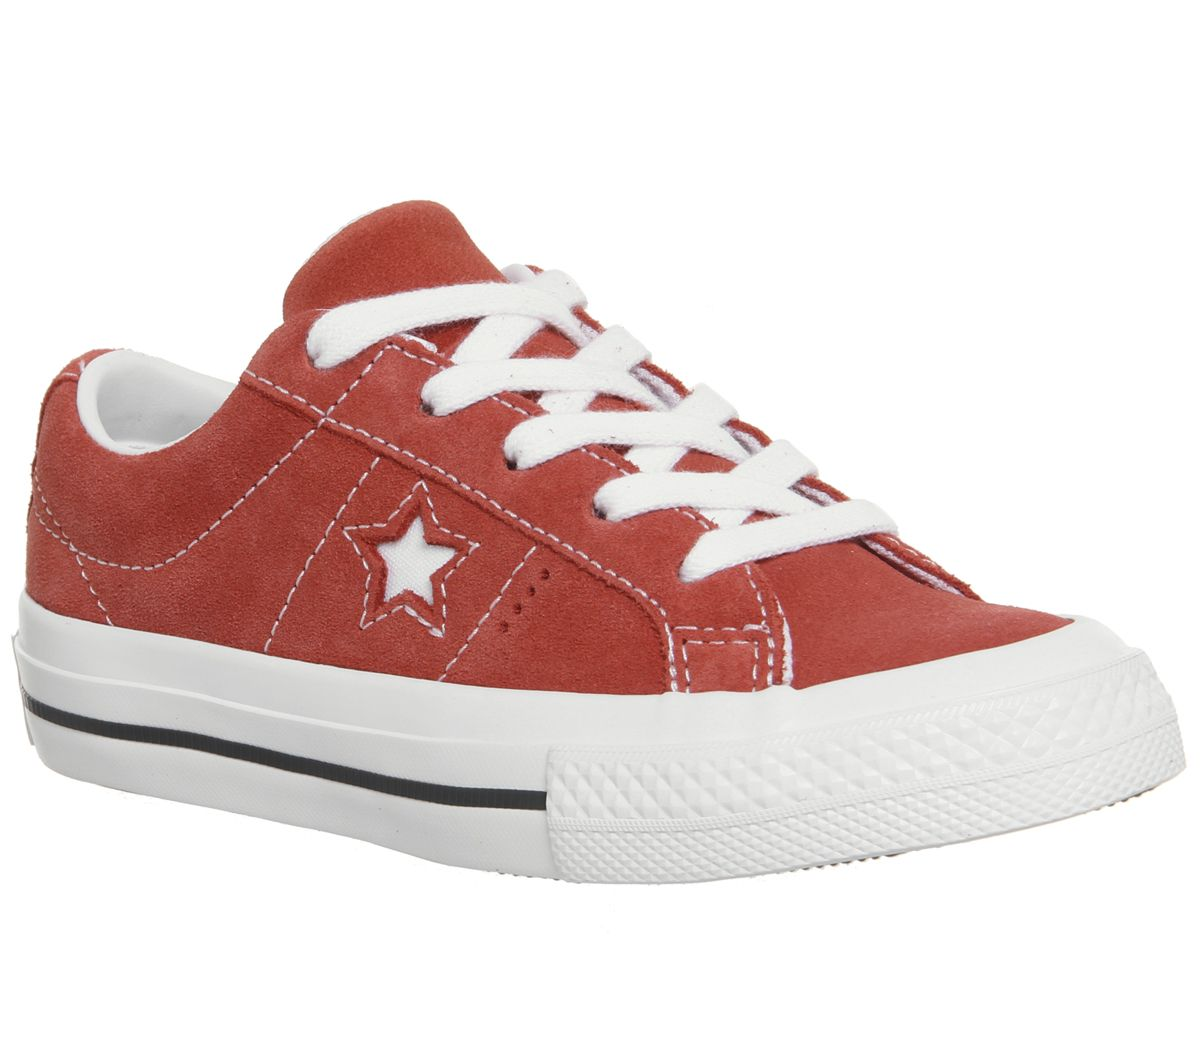 5d91b8a9b13902 Sentinel Kids Converse Red Suede Lace Up Trainers Size UK 2  Ex-Display